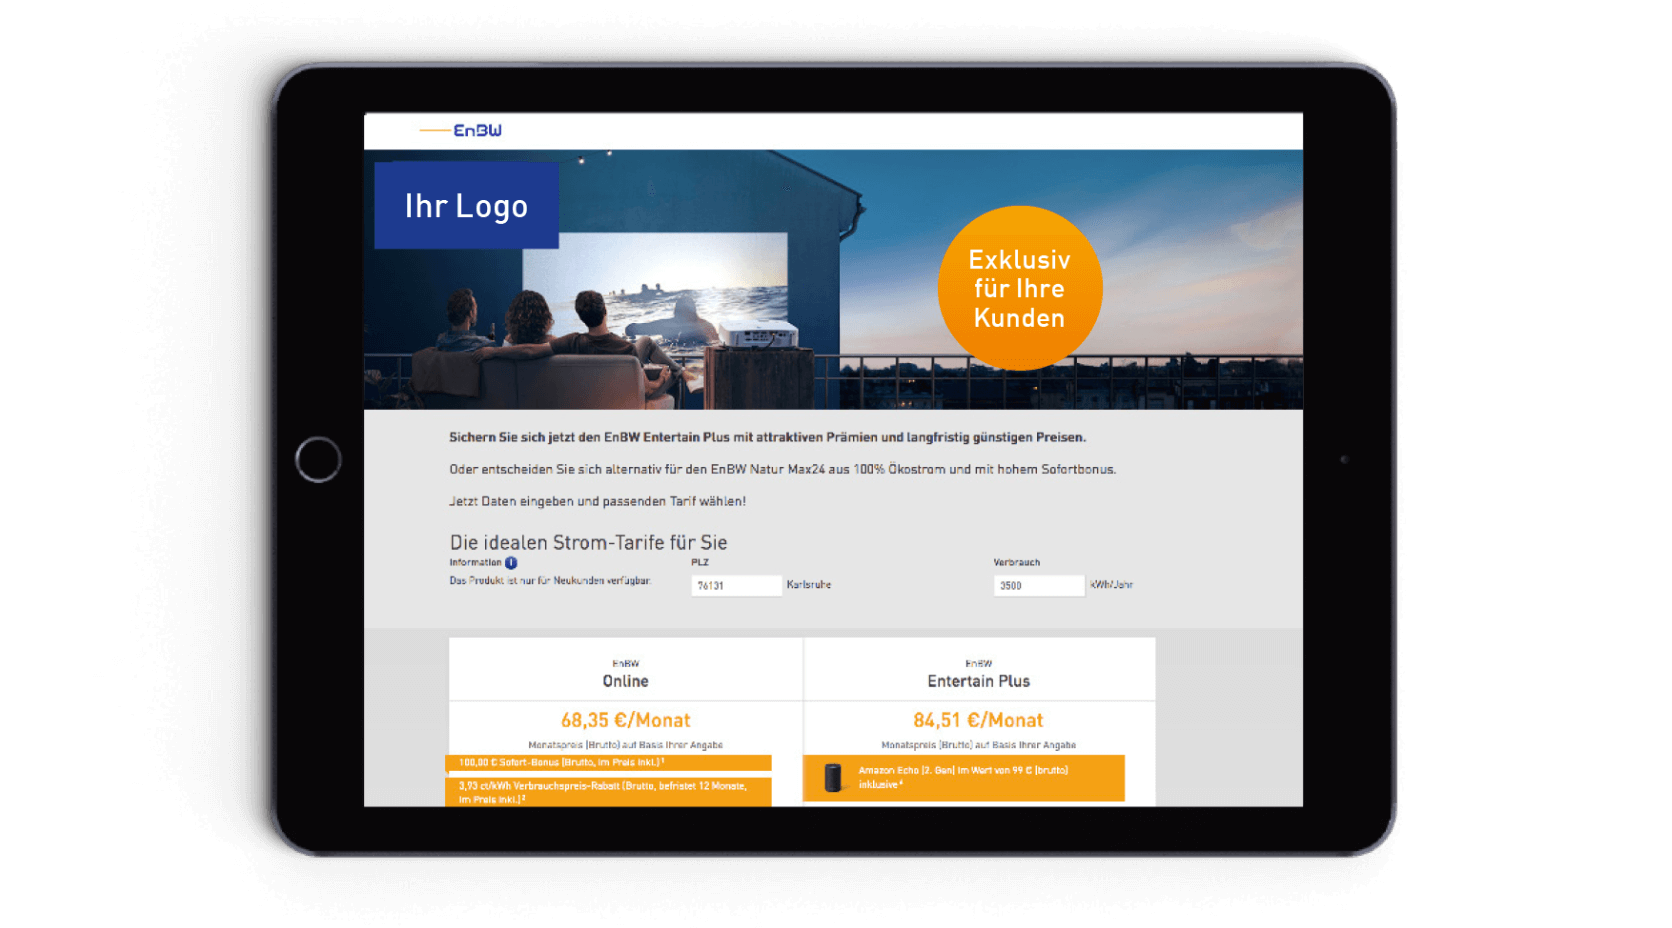 Tablet mit Website mit EnBW Produkten